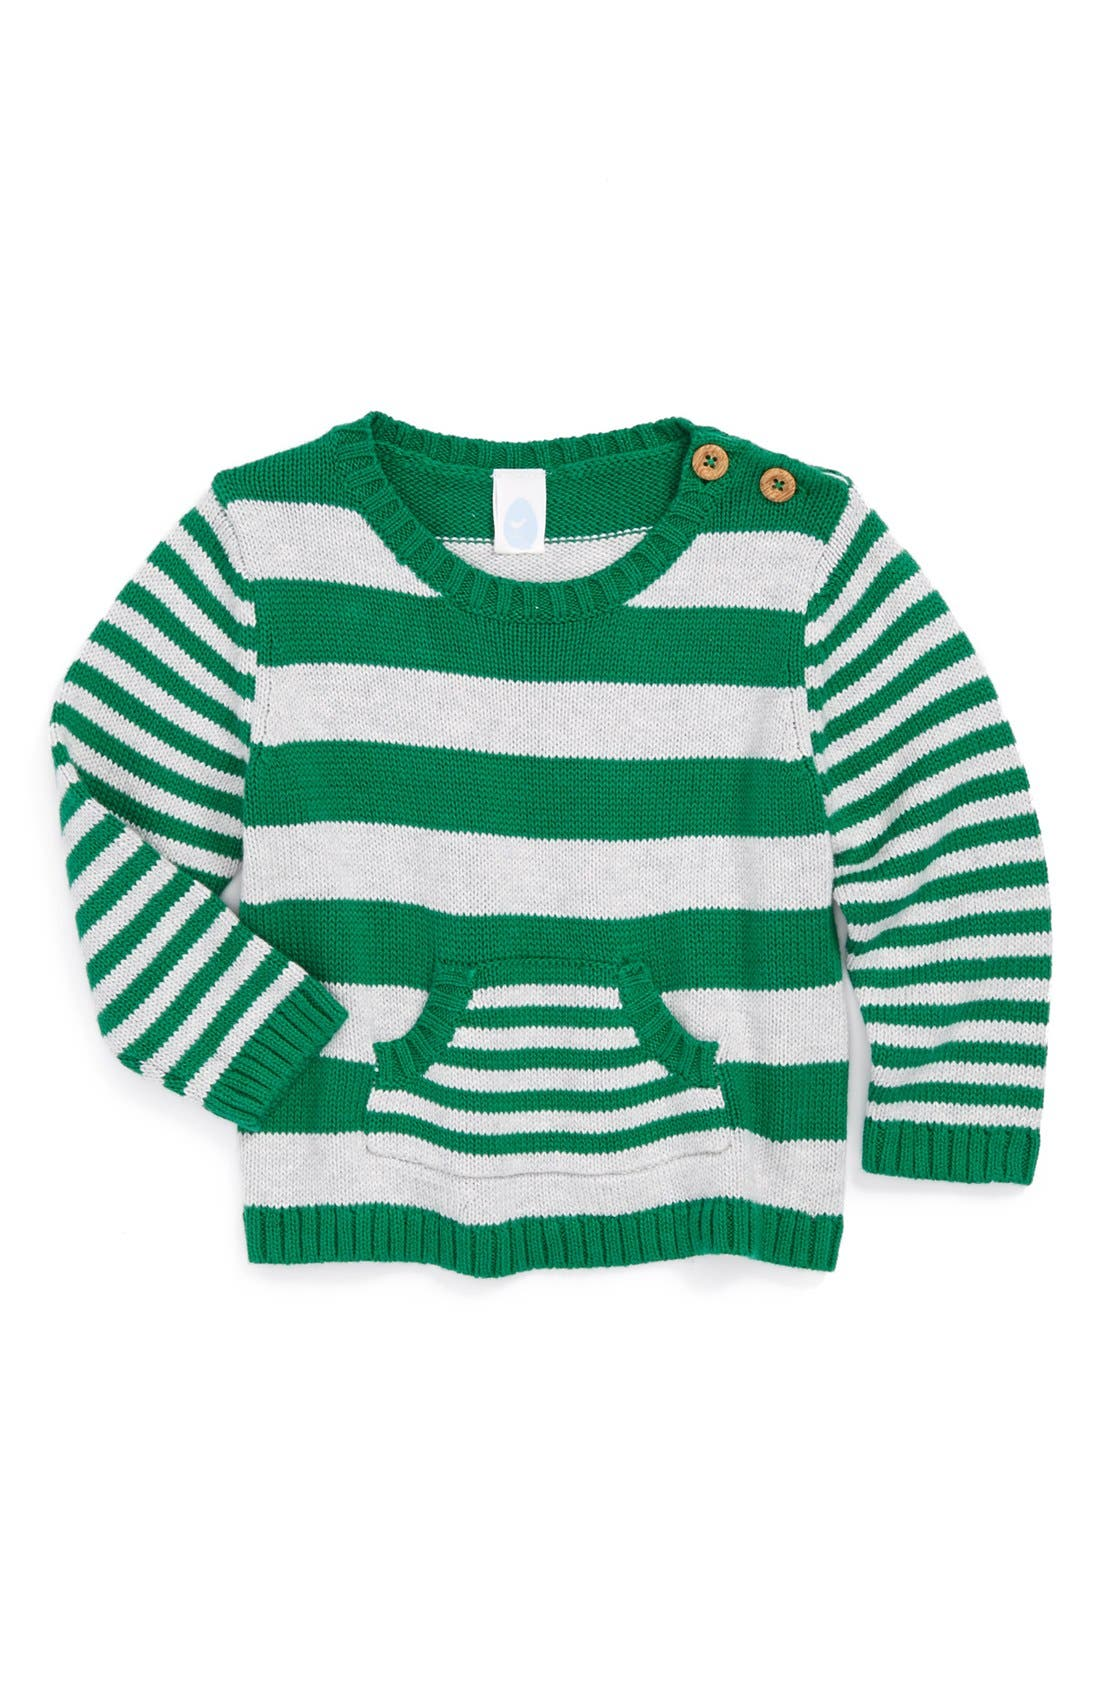 Main Image - Stem Baby Organic Cotton Sweater (Baby Boys)